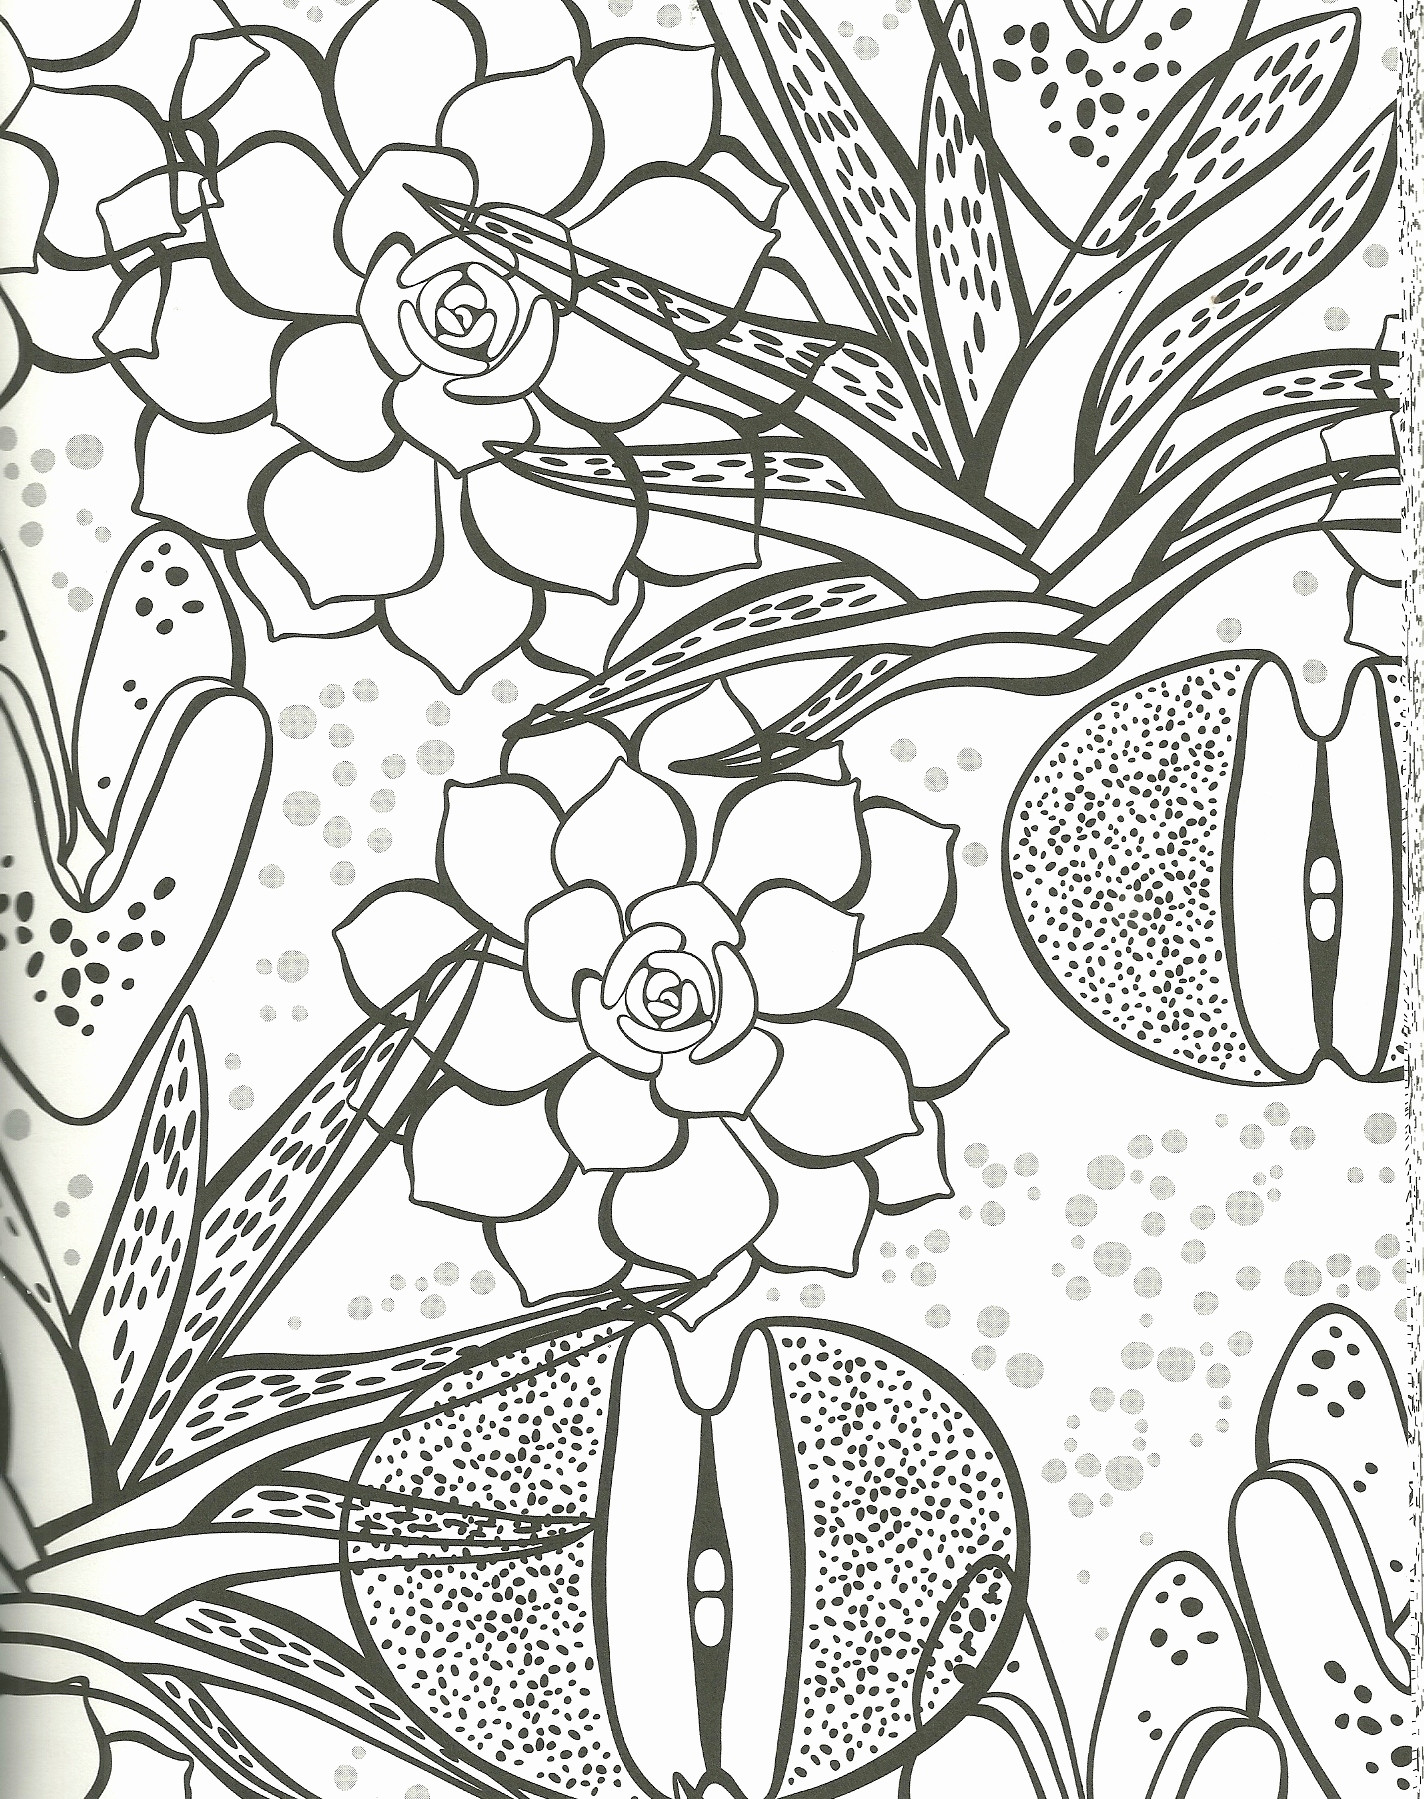 flower vase food of flower coloring book pages fun time with regard to flower coloring book pages coloring new cool vases flower vase coloring page pages flowers in